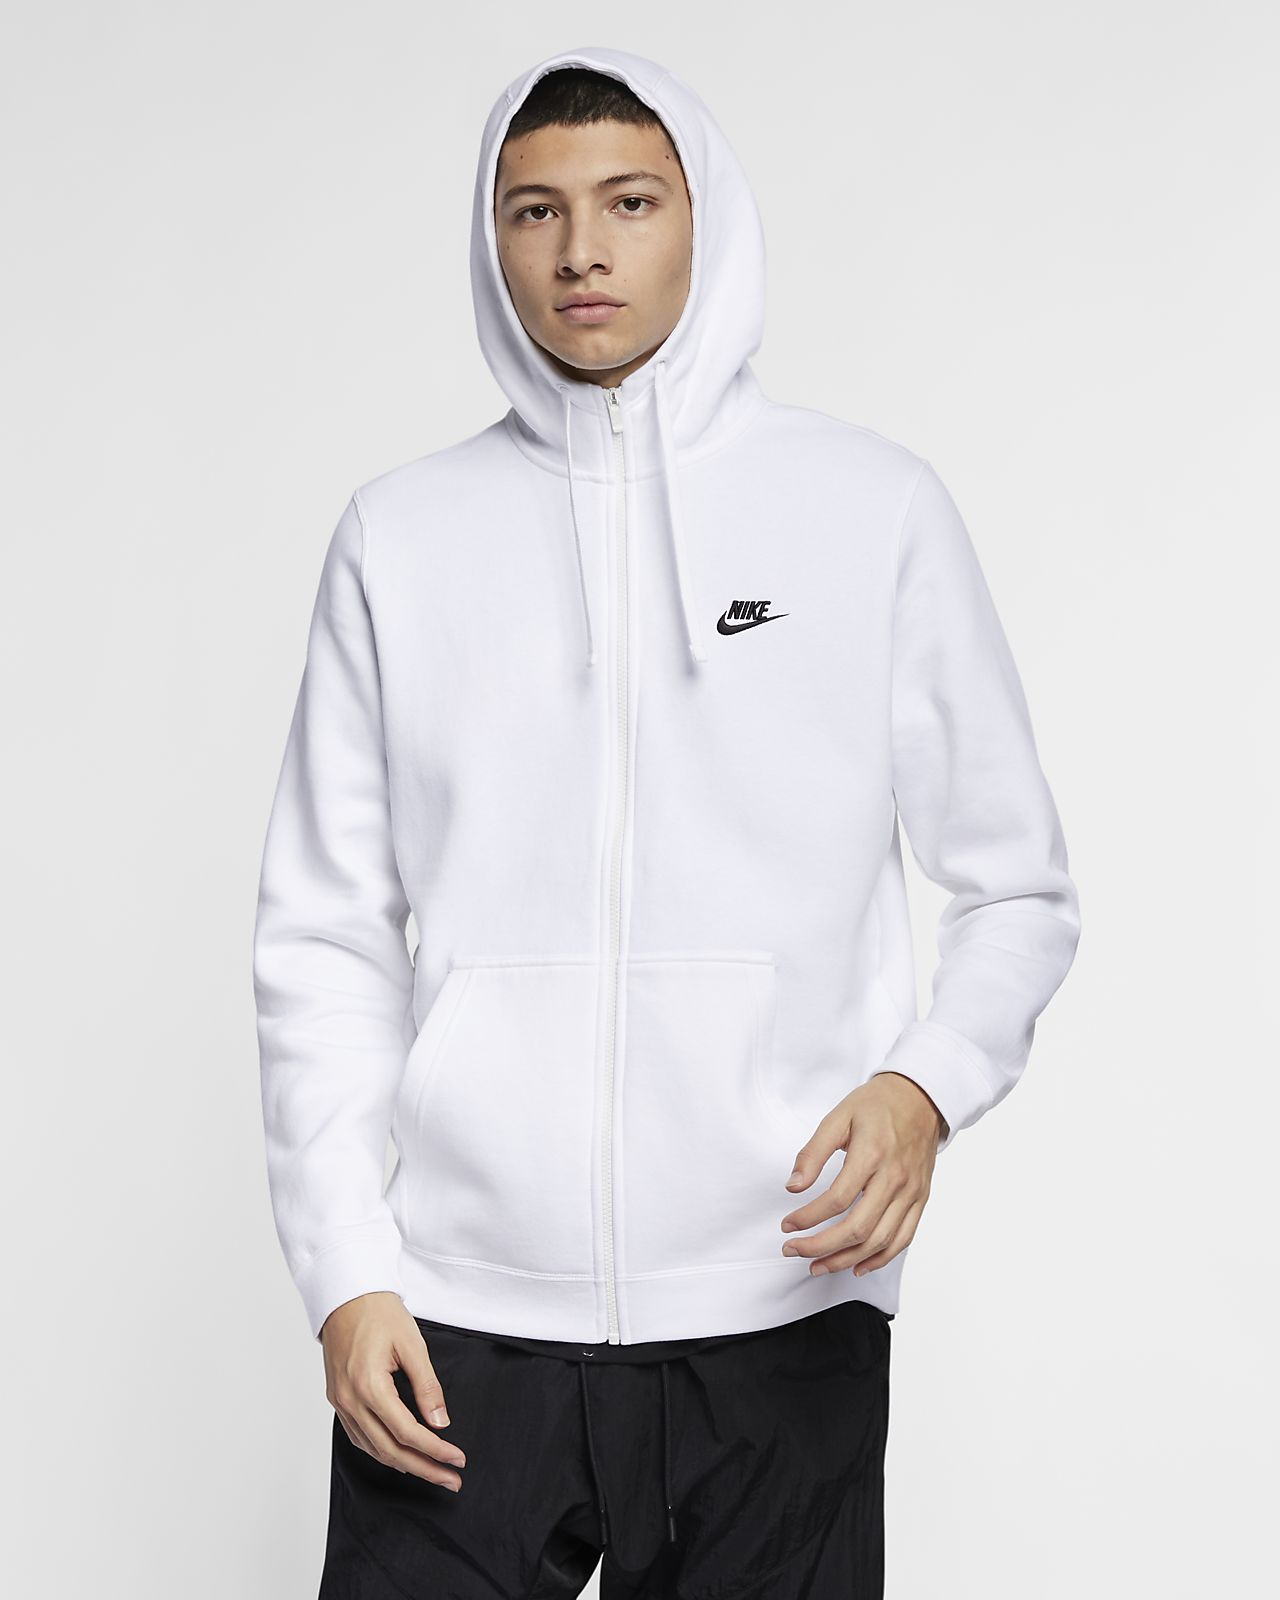 4c07e08cae8 Nike Sportswear Club Fleece Men s Hoodie. Nike.com